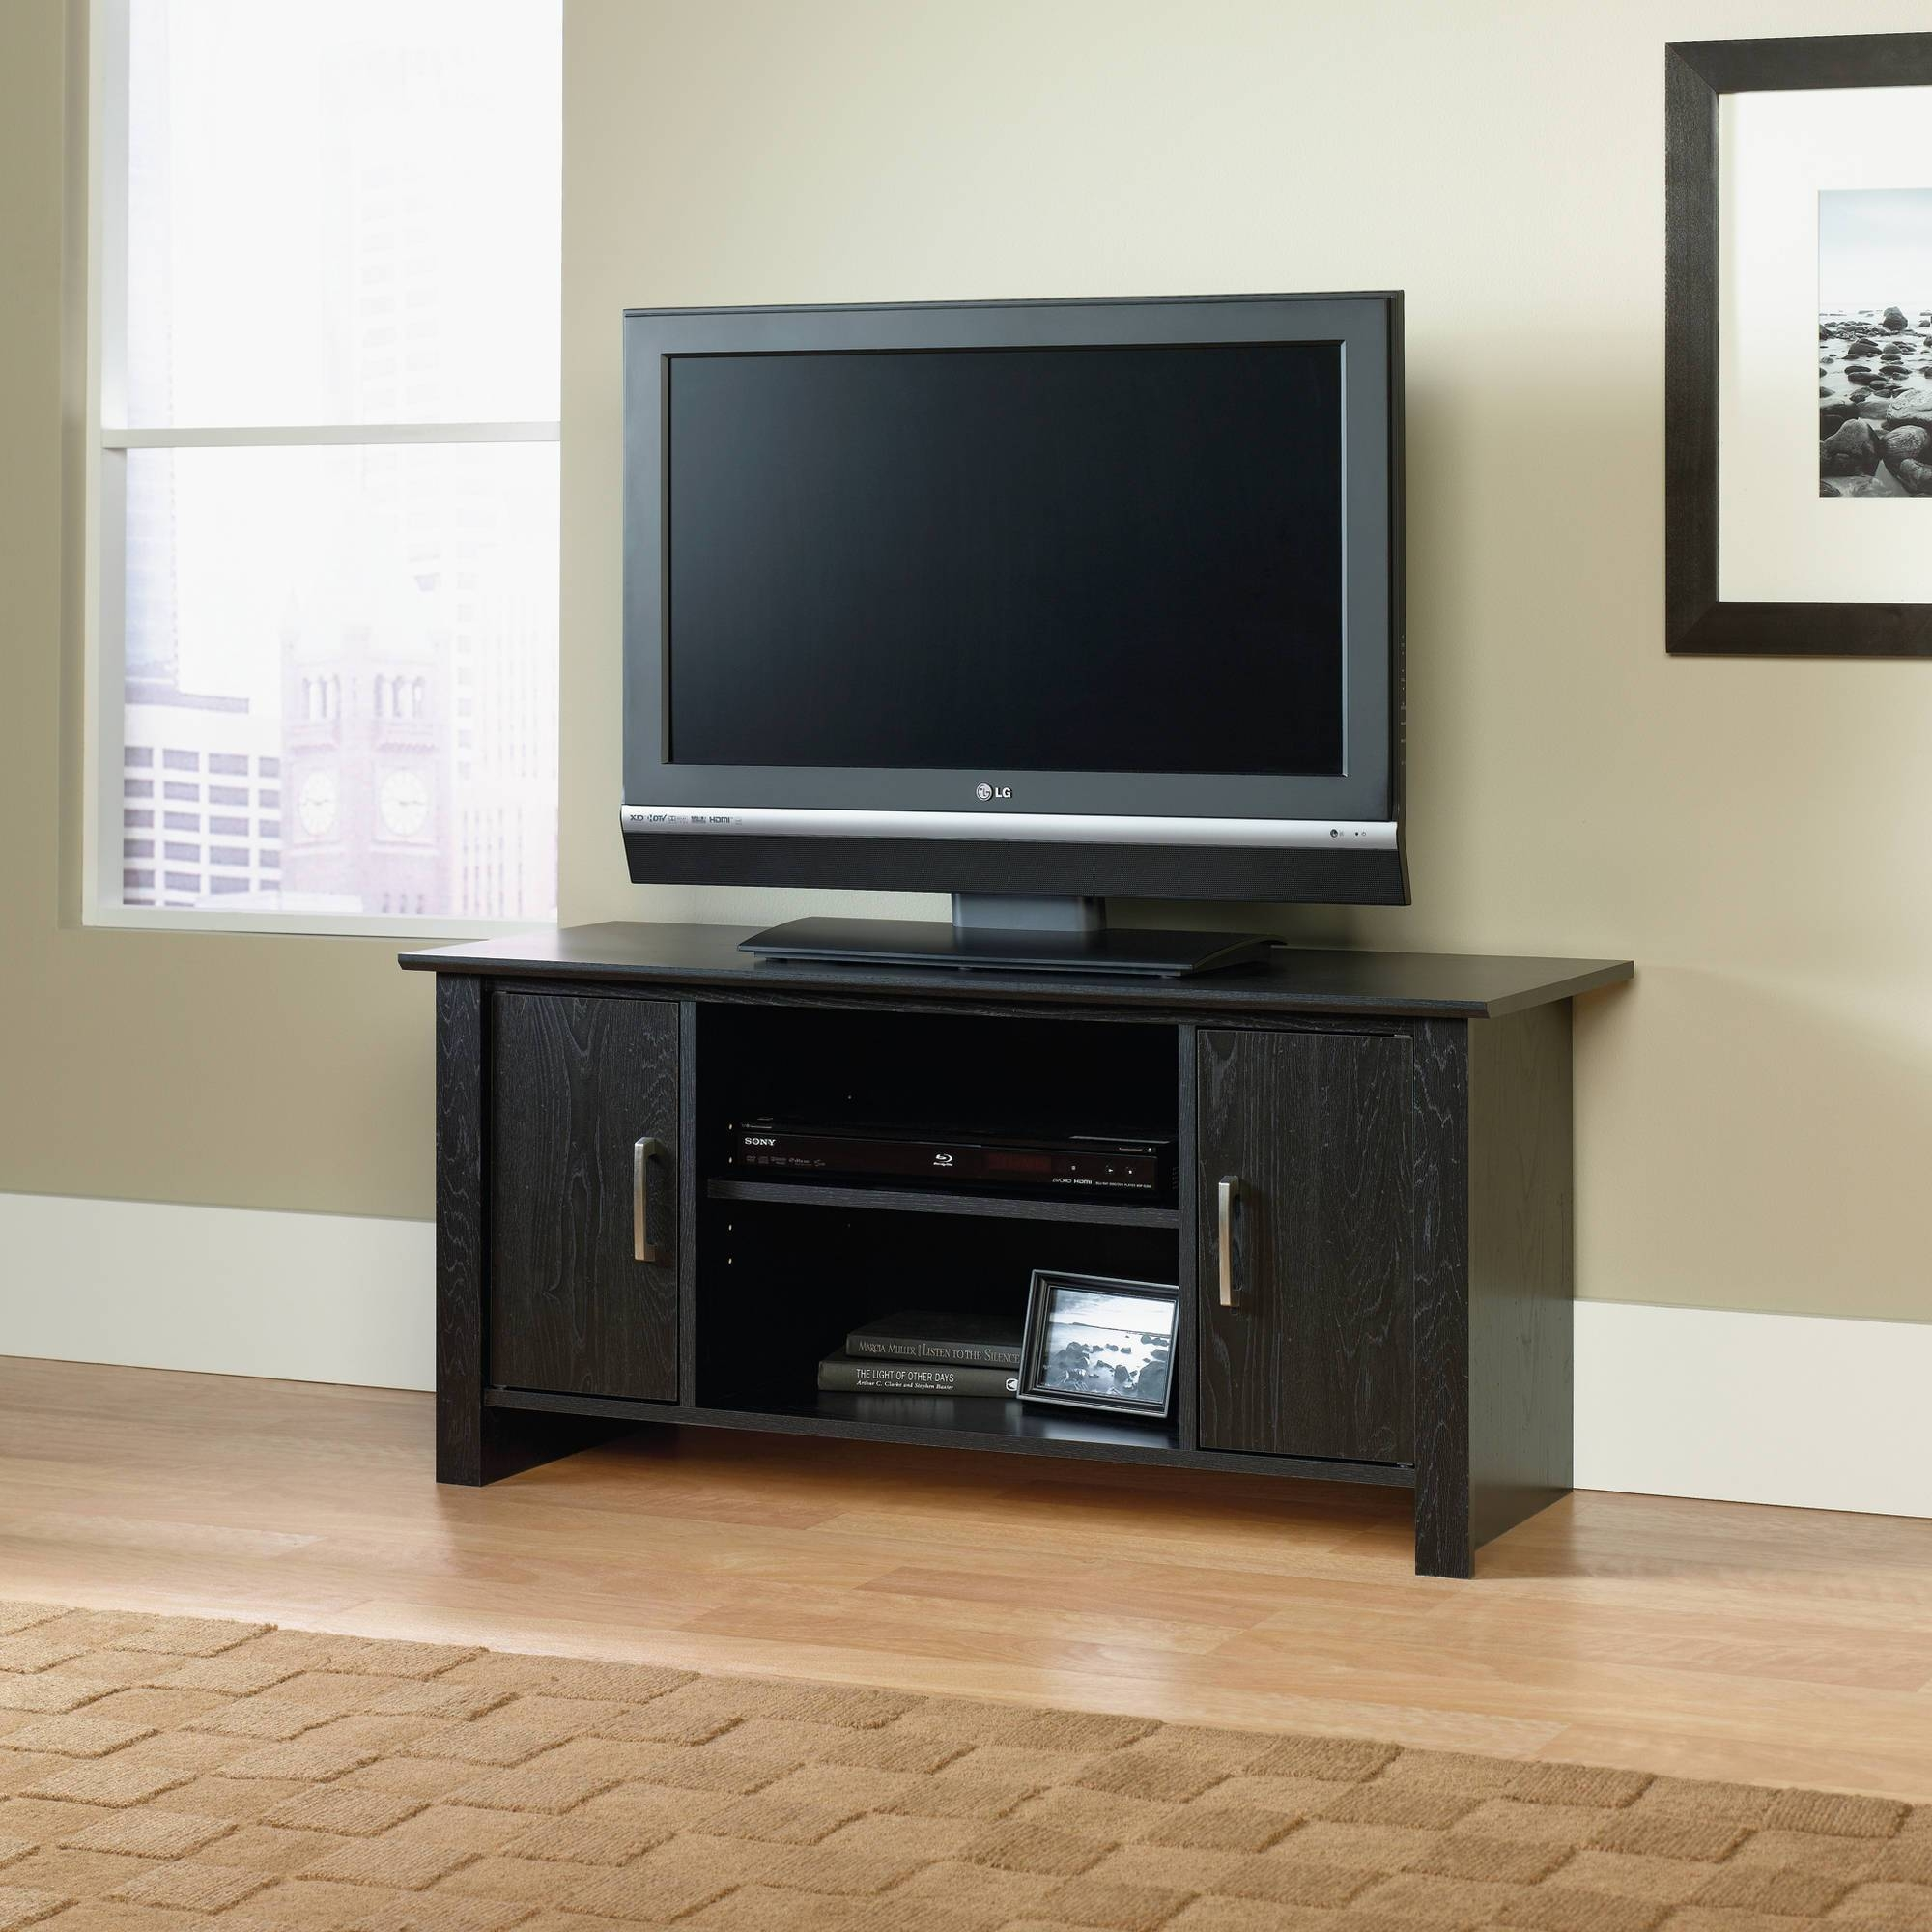 Tv Stands & Entertainment Centers - Walmart for Storage Tv Stands (Image 11 of 15)